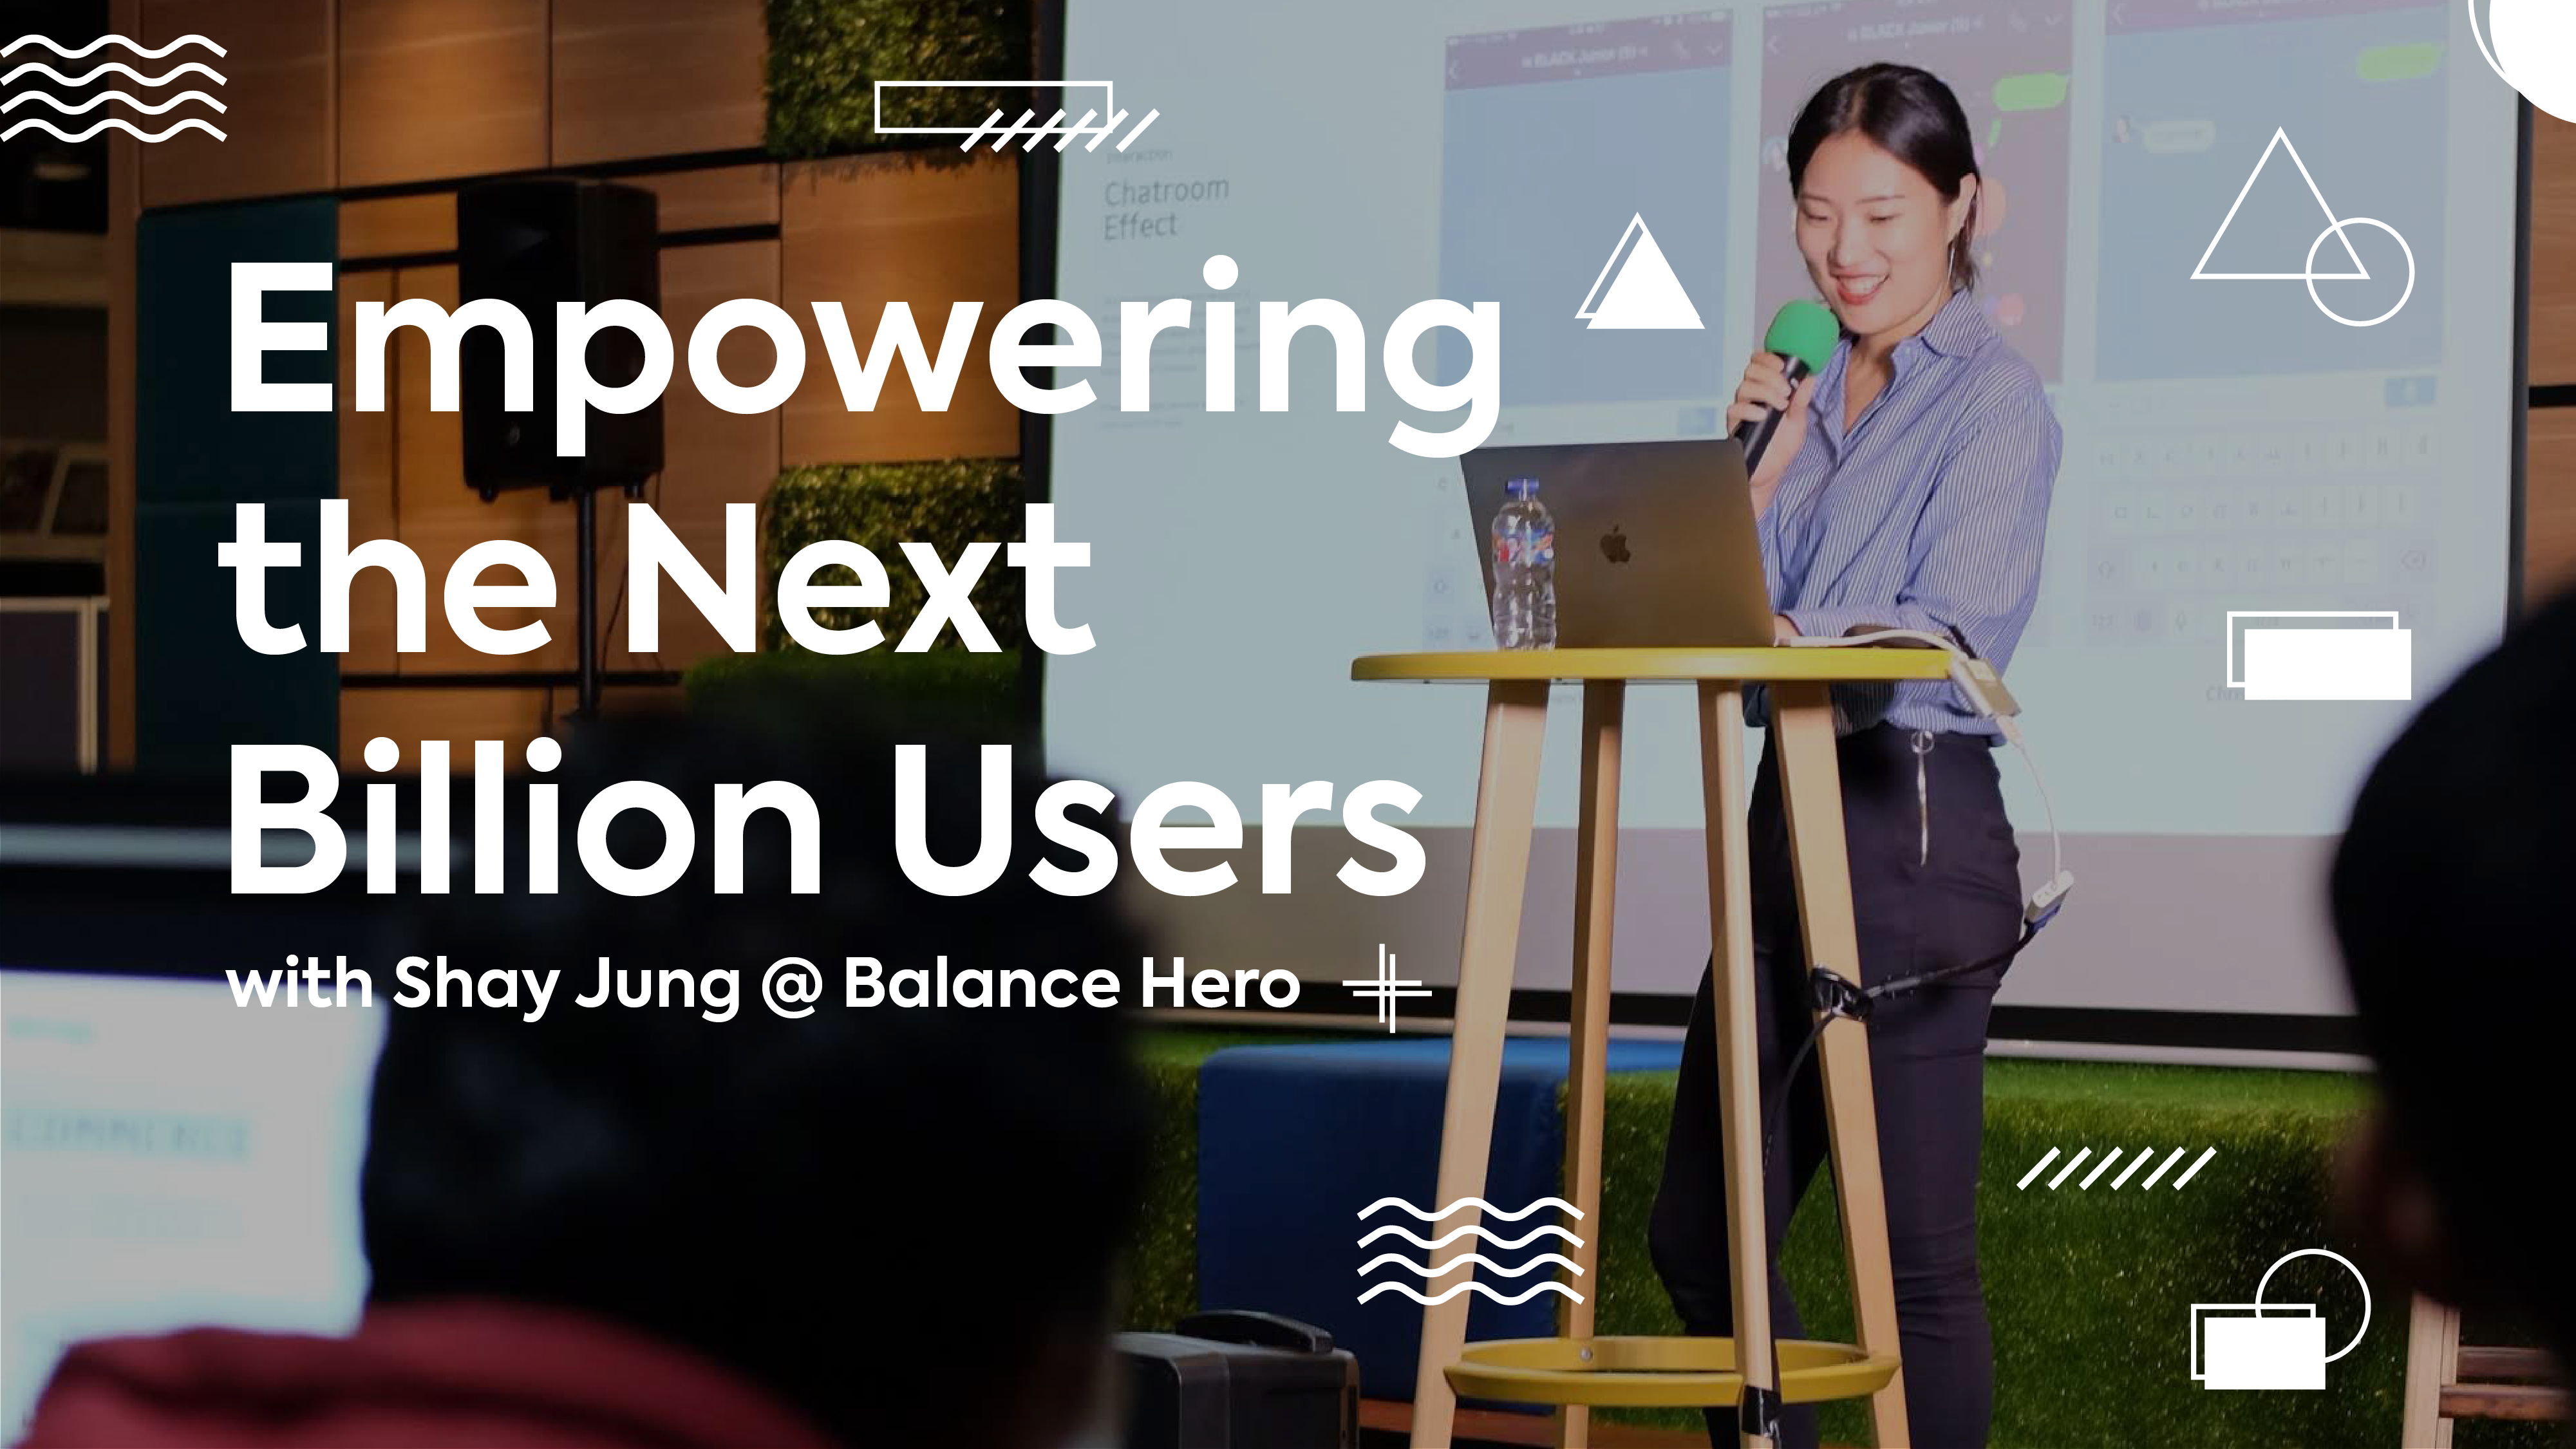 Empowering the Next Billion Users with Balance Hero